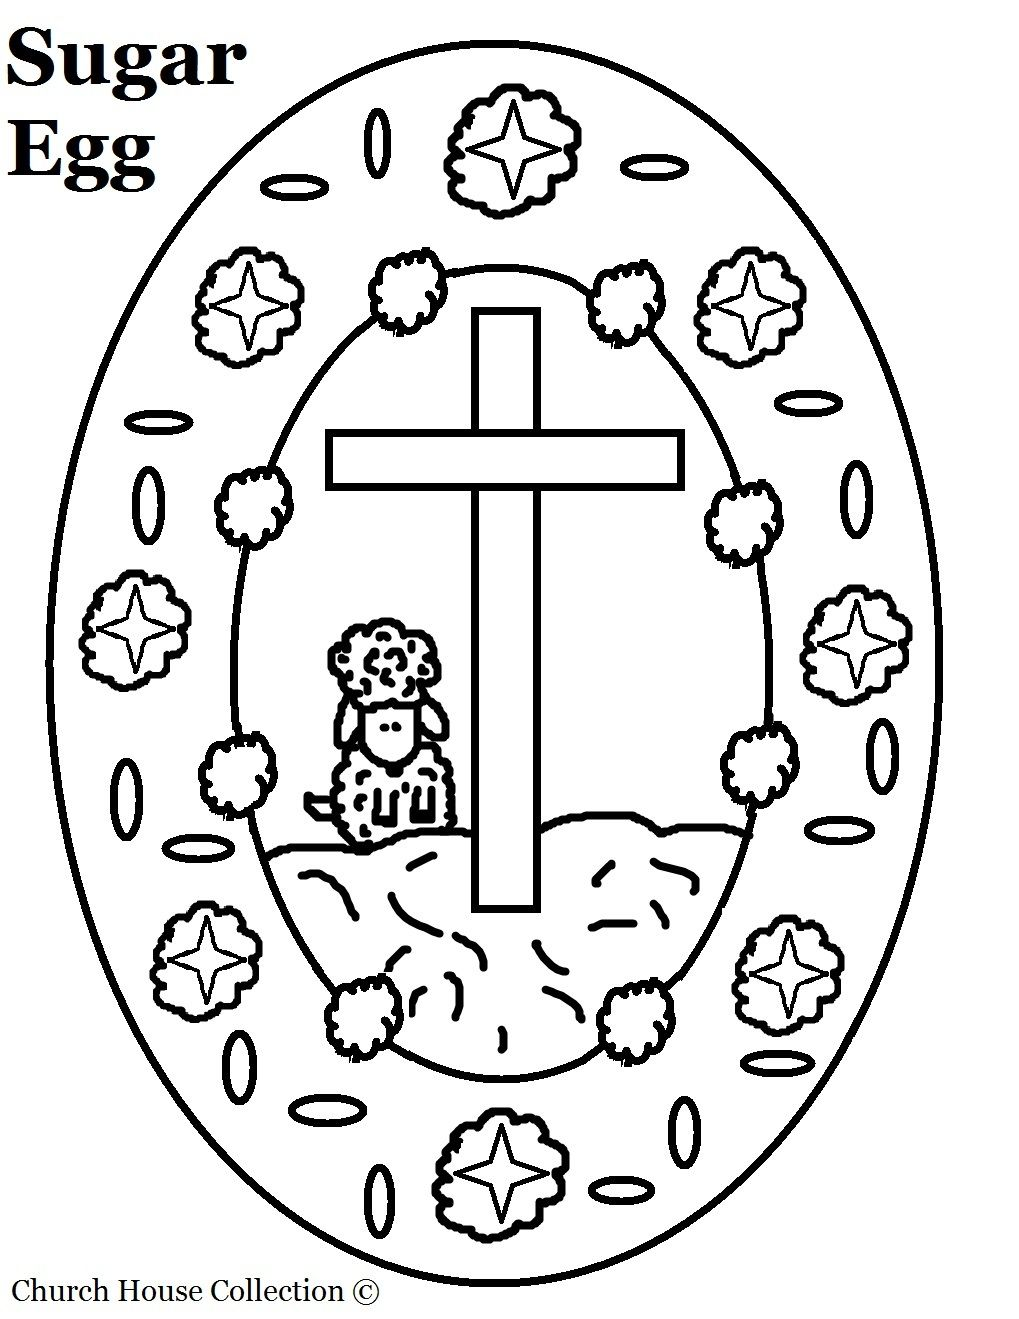 Christian Easter Egg Coloring Pages | egg coloring page sugar egg ...